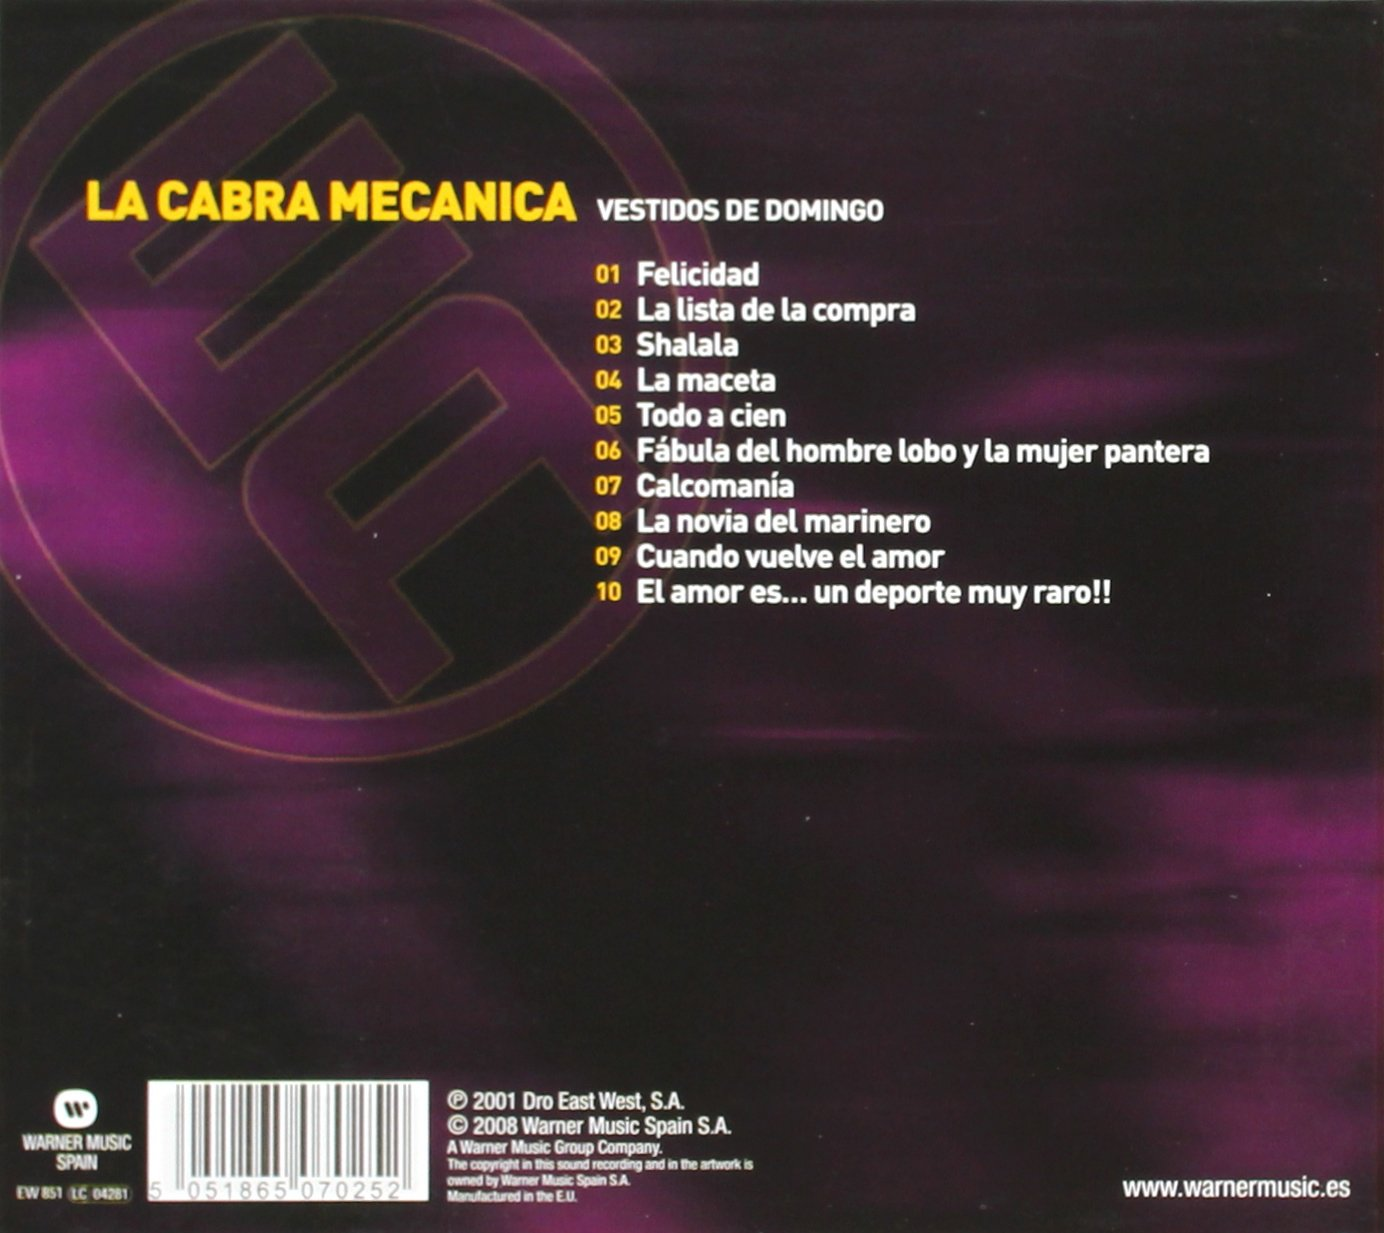 Cabra Mecanica - Essential Albums: Vestidos de Domingo - Amazon.com Music